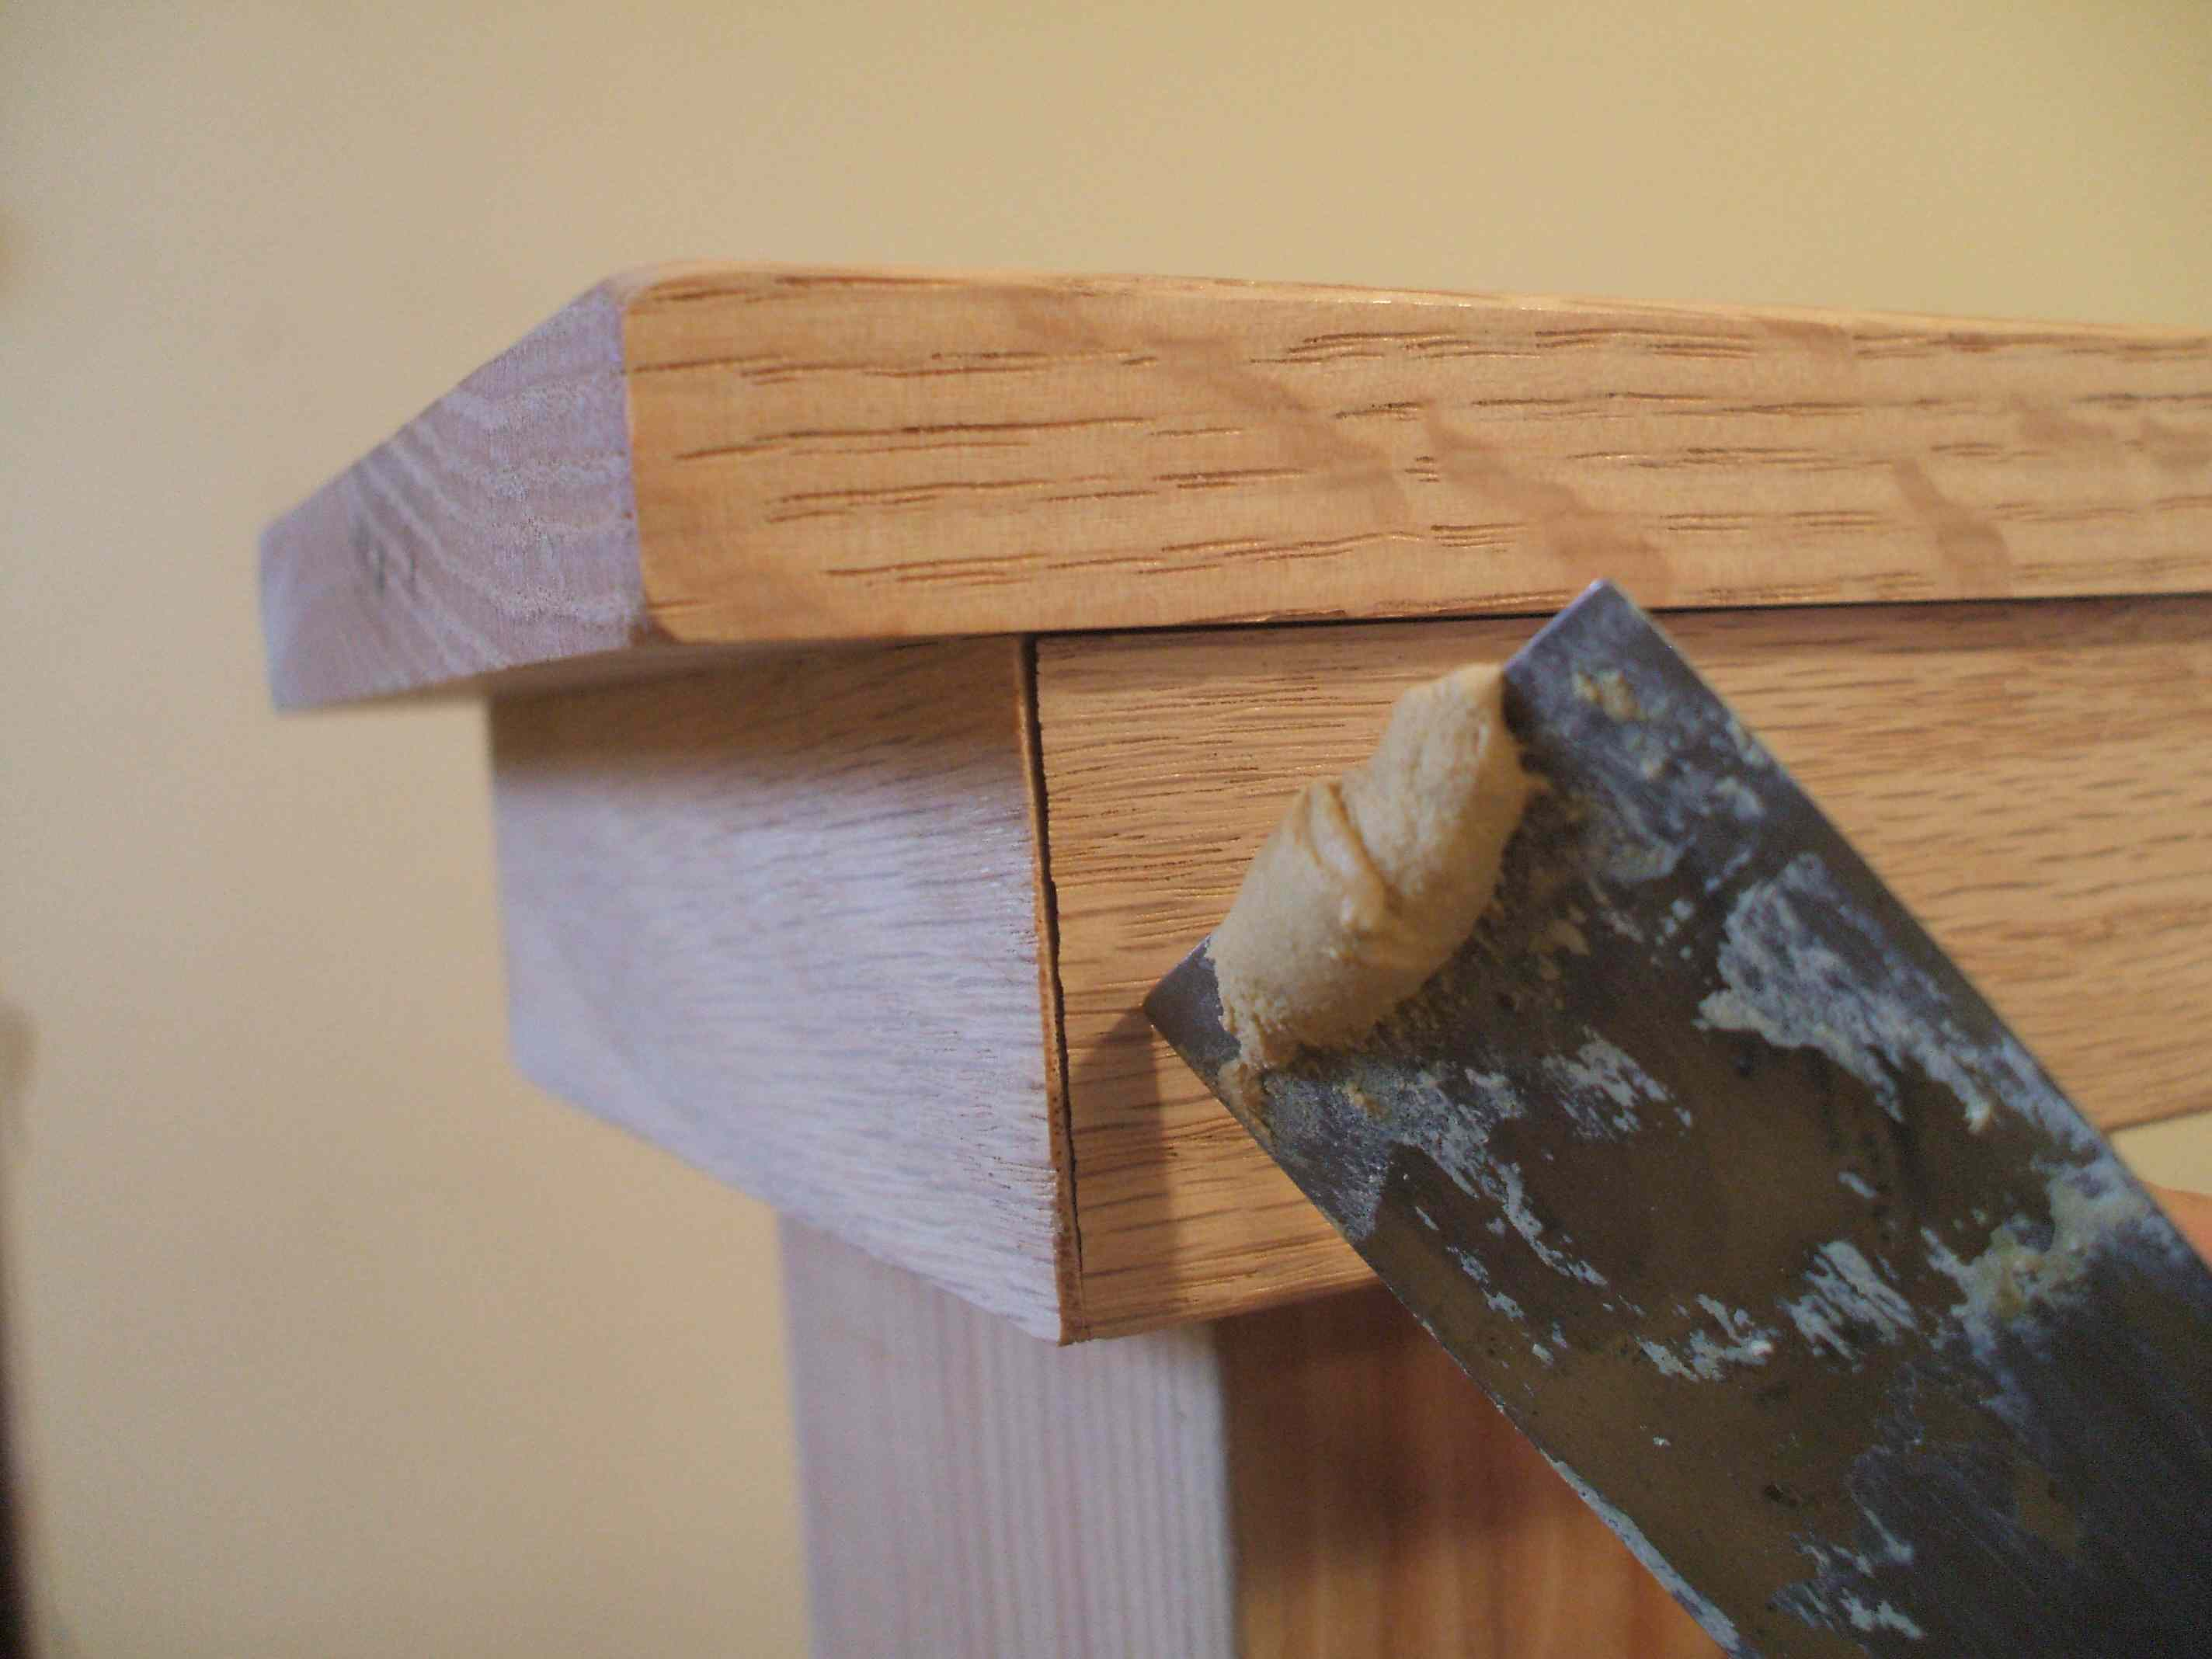 How To Use Wood Filler On Woodworking Projects